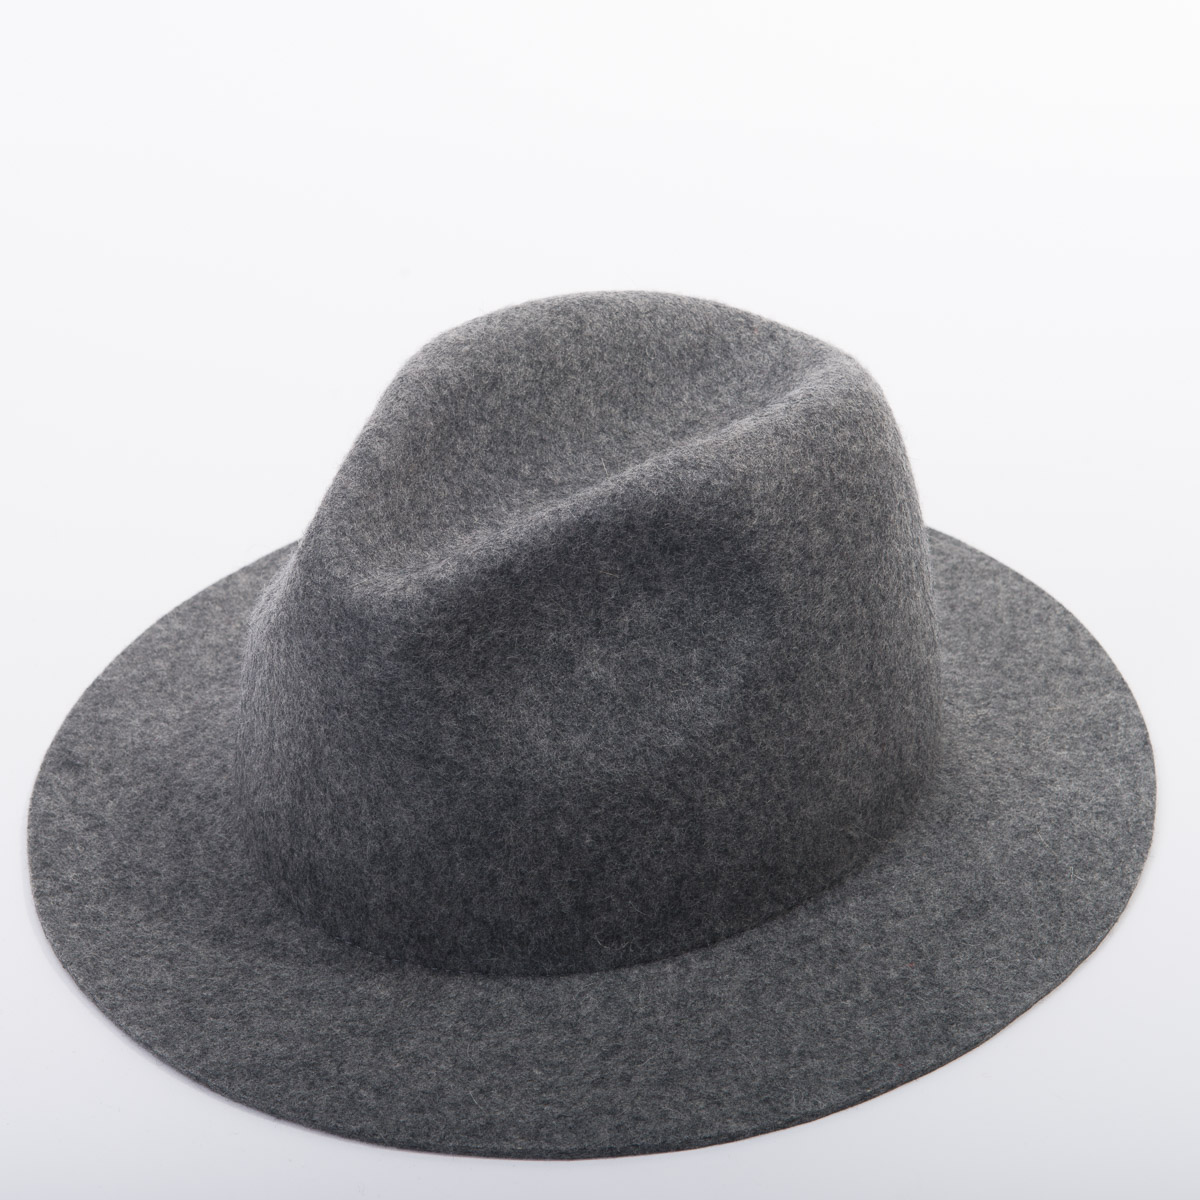 Light Grey Heather Medium Brim Fedora Felt Plain Hats-W0167A-MIX GREY- Sun  Yorkos  a6251e8fe8c